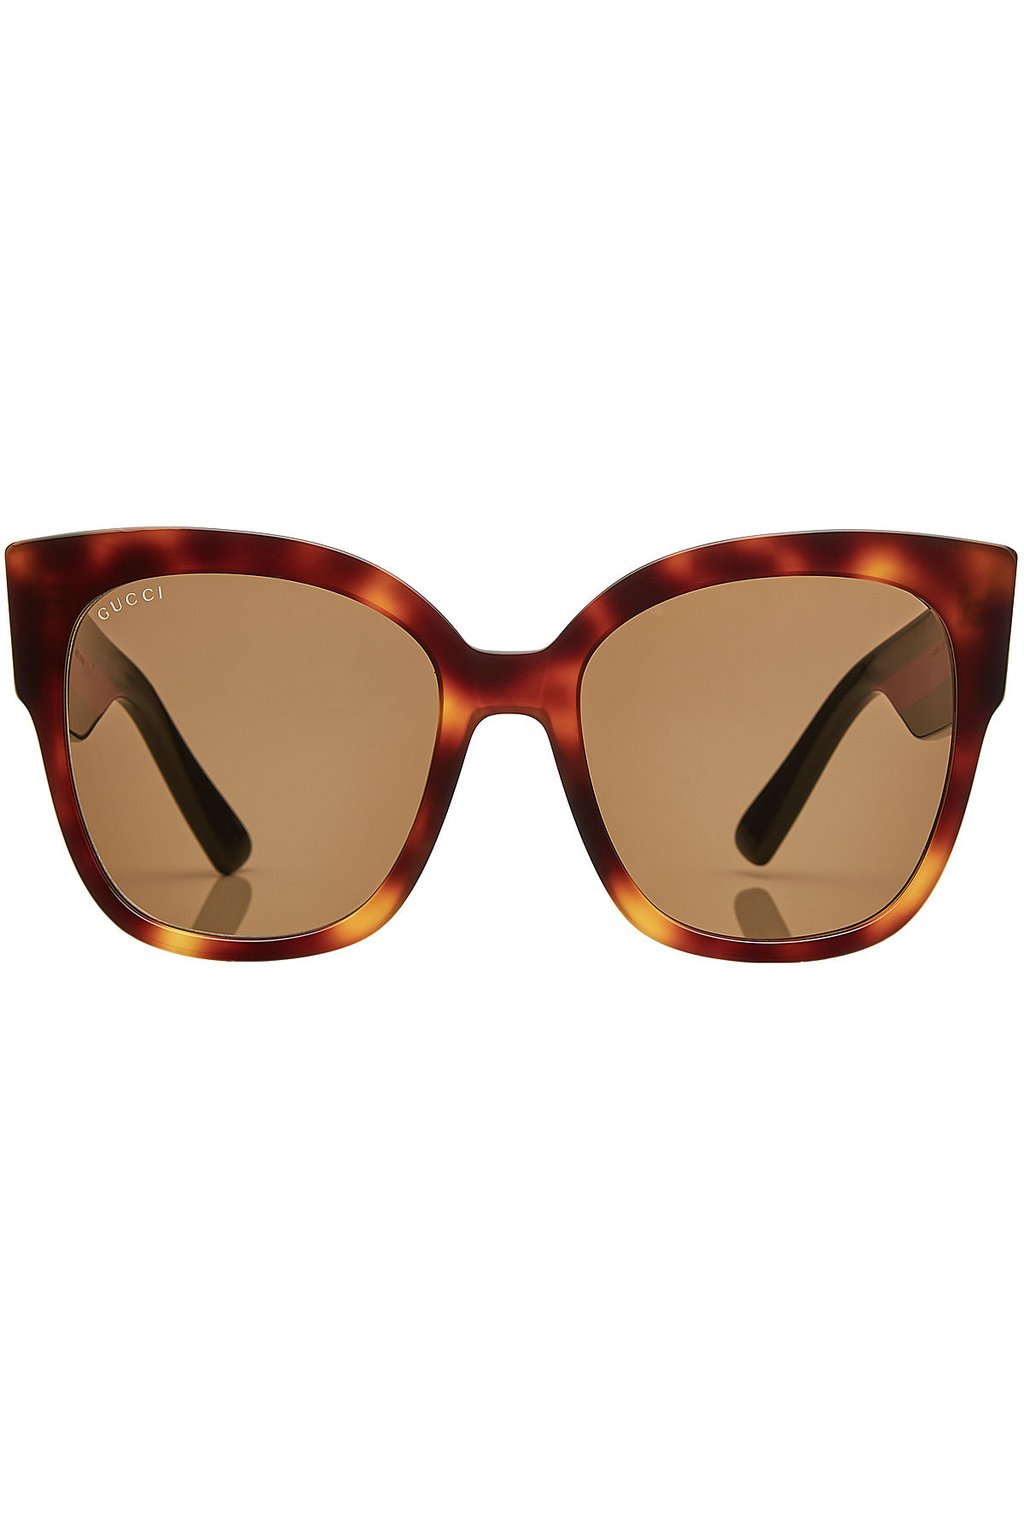 Square Sunglasses - predominant colour: tan; occasions: casual, holiday; style: square; size: large; material: plastic/rubber; pattern: tortoiseshell; finish: plain; season: s/s 2013; wardrobe: highlight